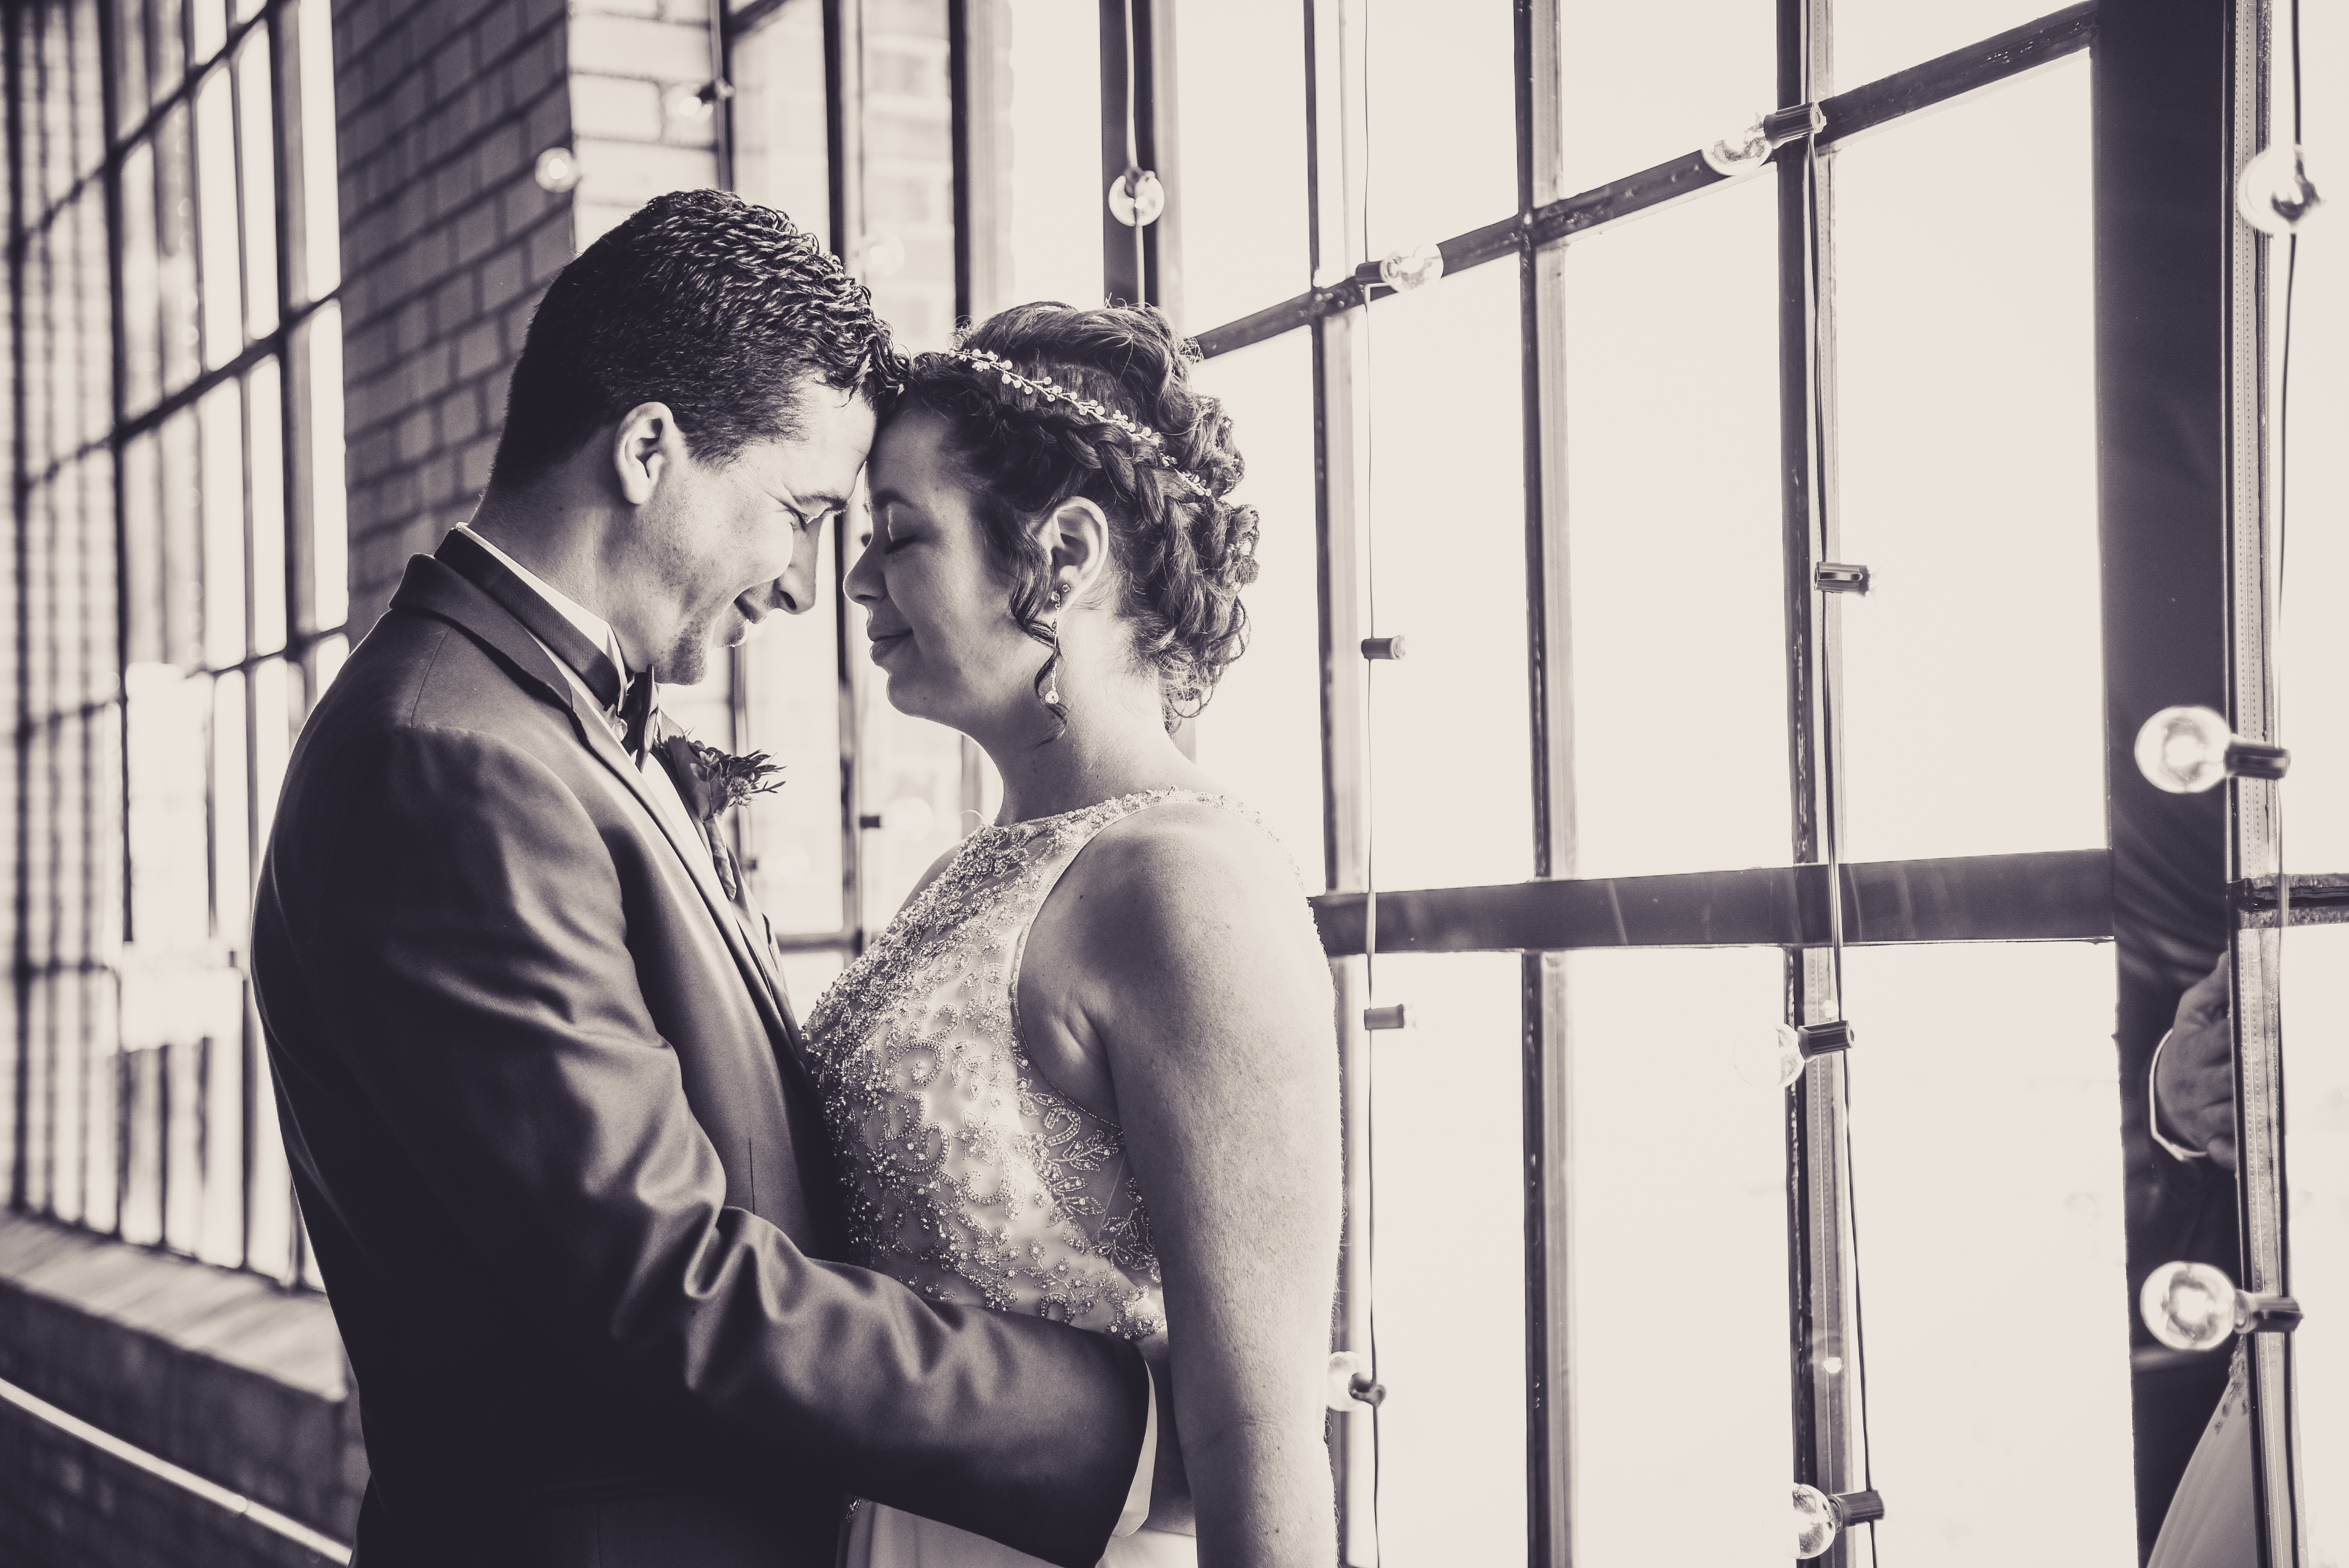 a photo of a bride and groom kissing in an industrial loft wedding venue